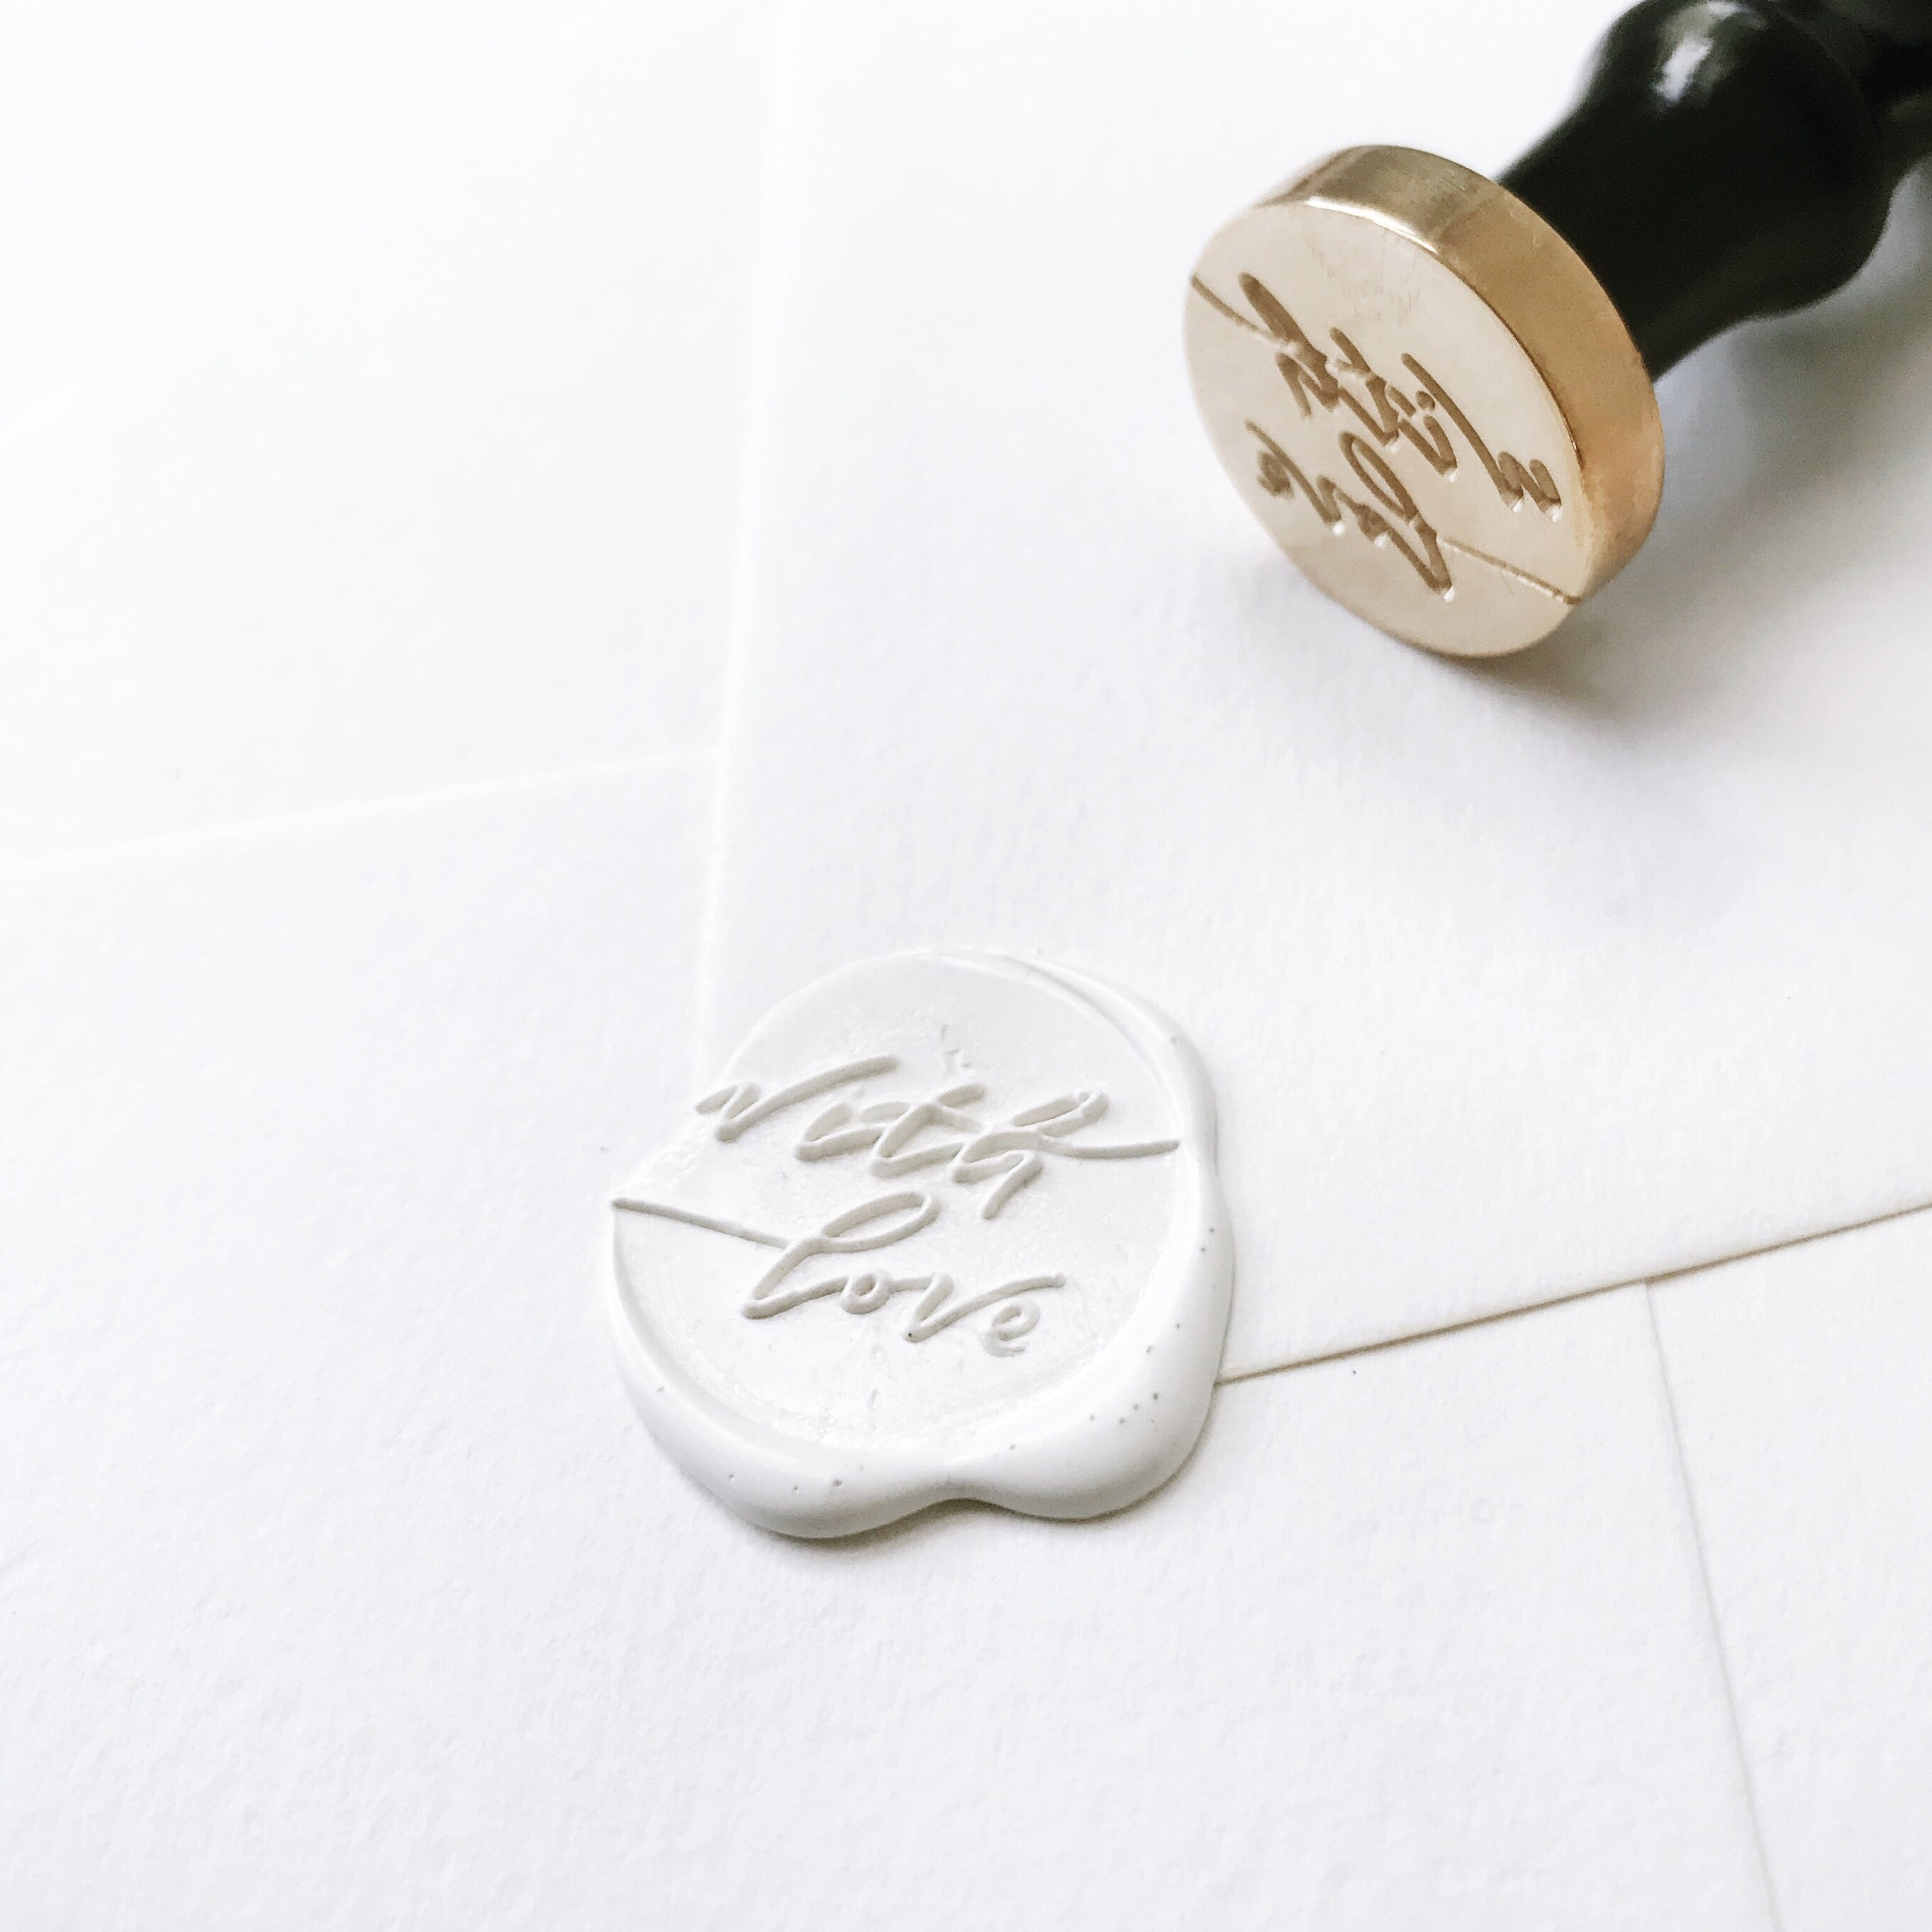 With Love Wax Seal